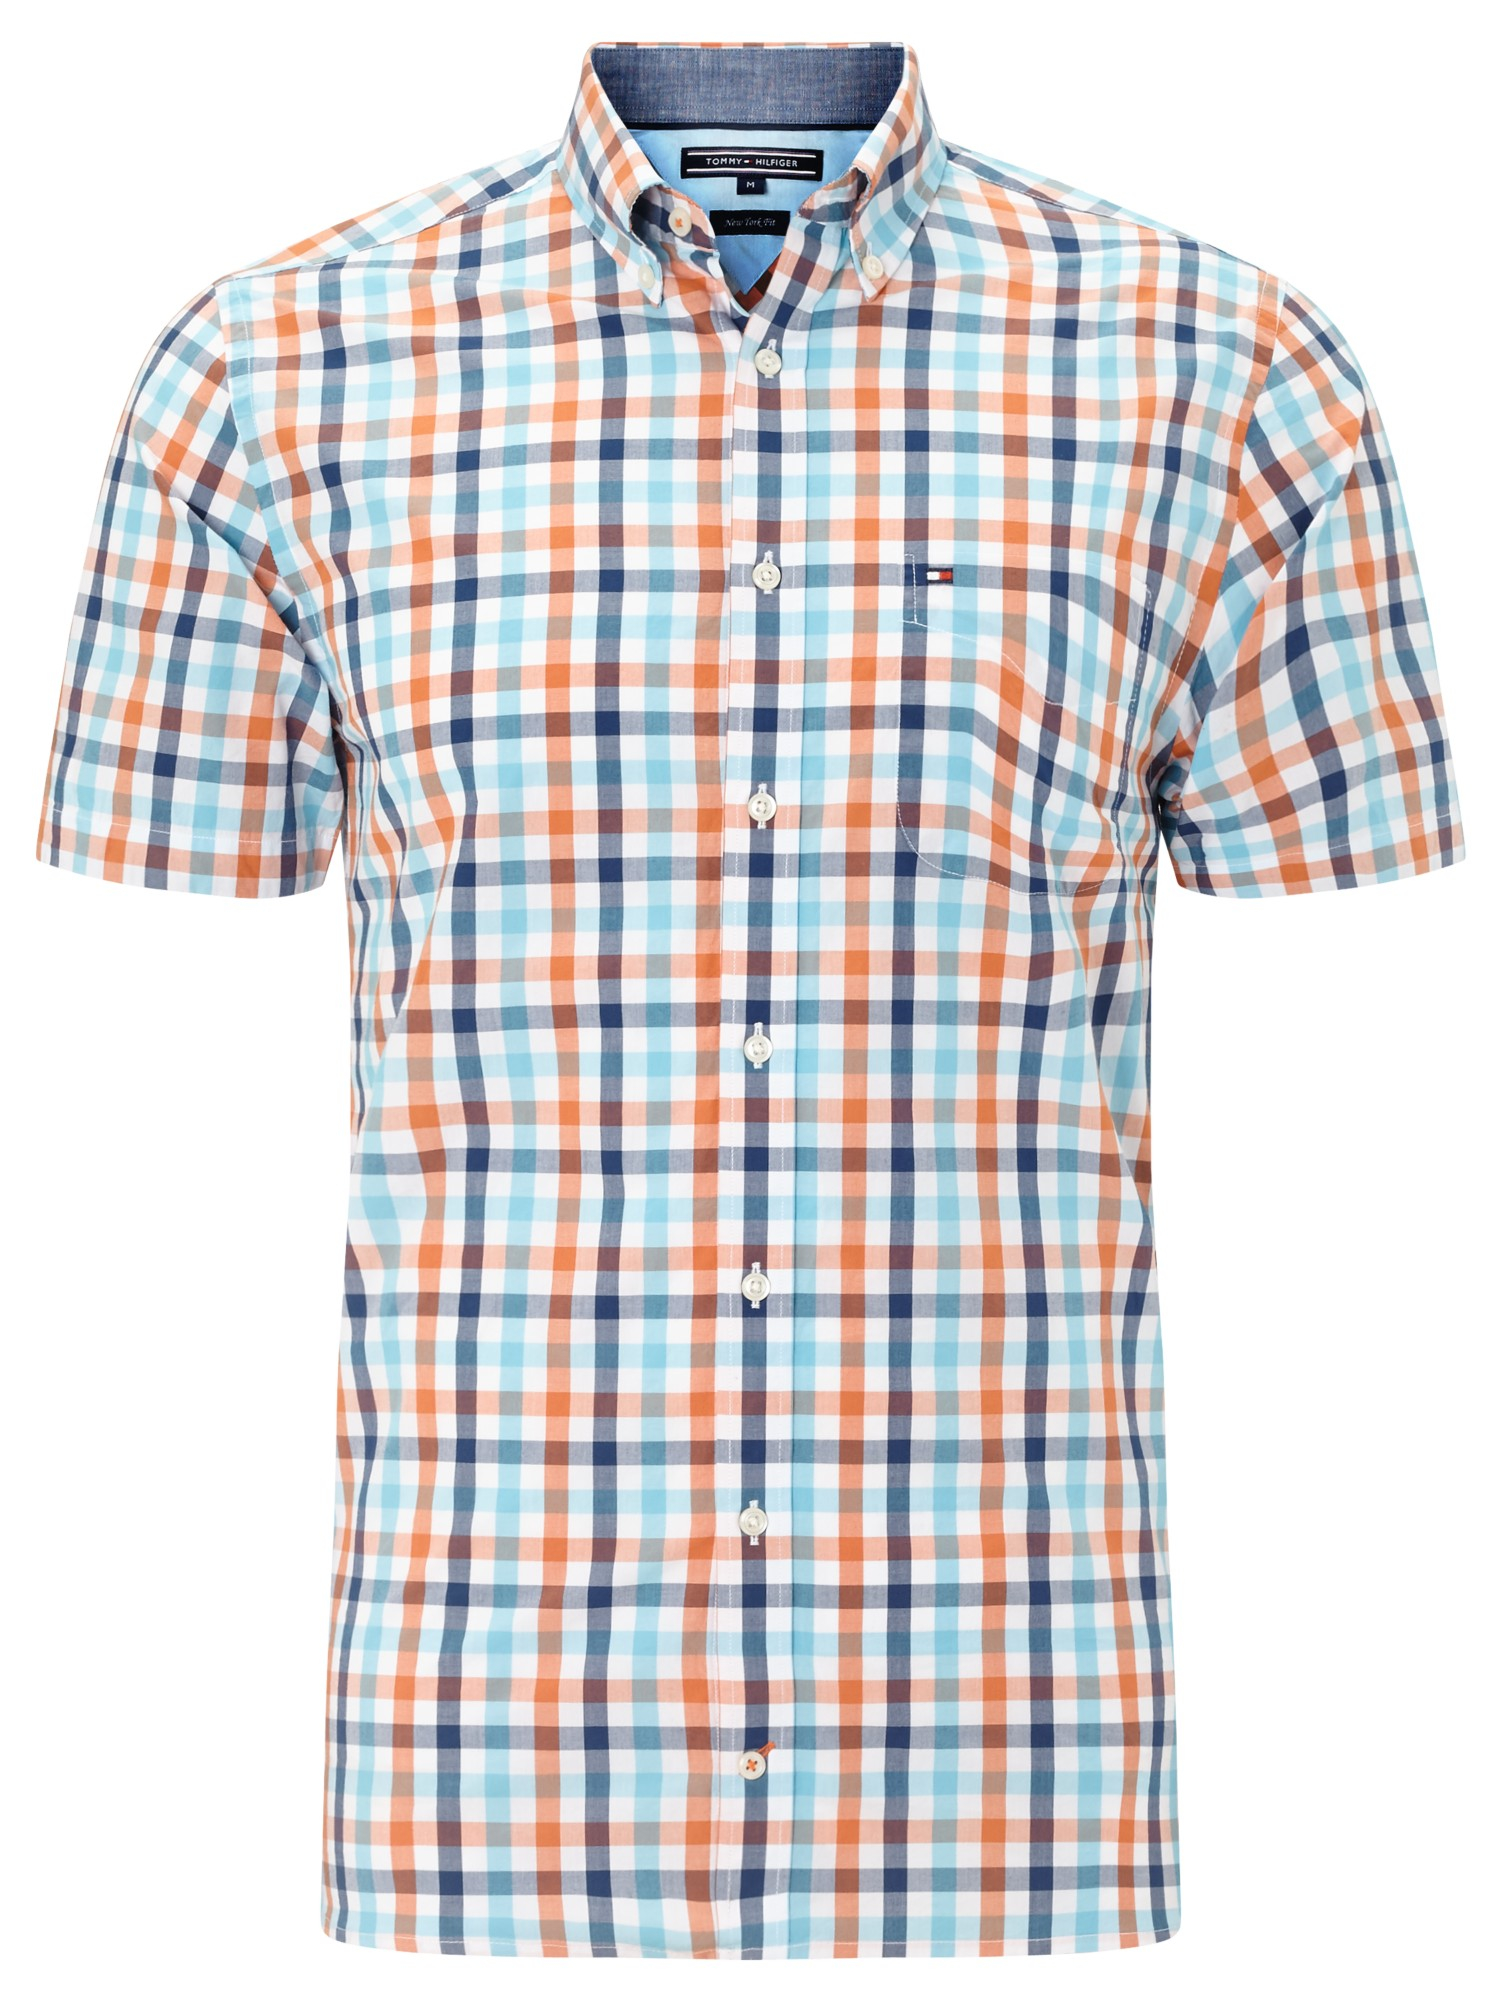 8e2aed55 Tommy Hilfiger Eddy Short Sleeve Check Shirt in Blue for Men - Lyst